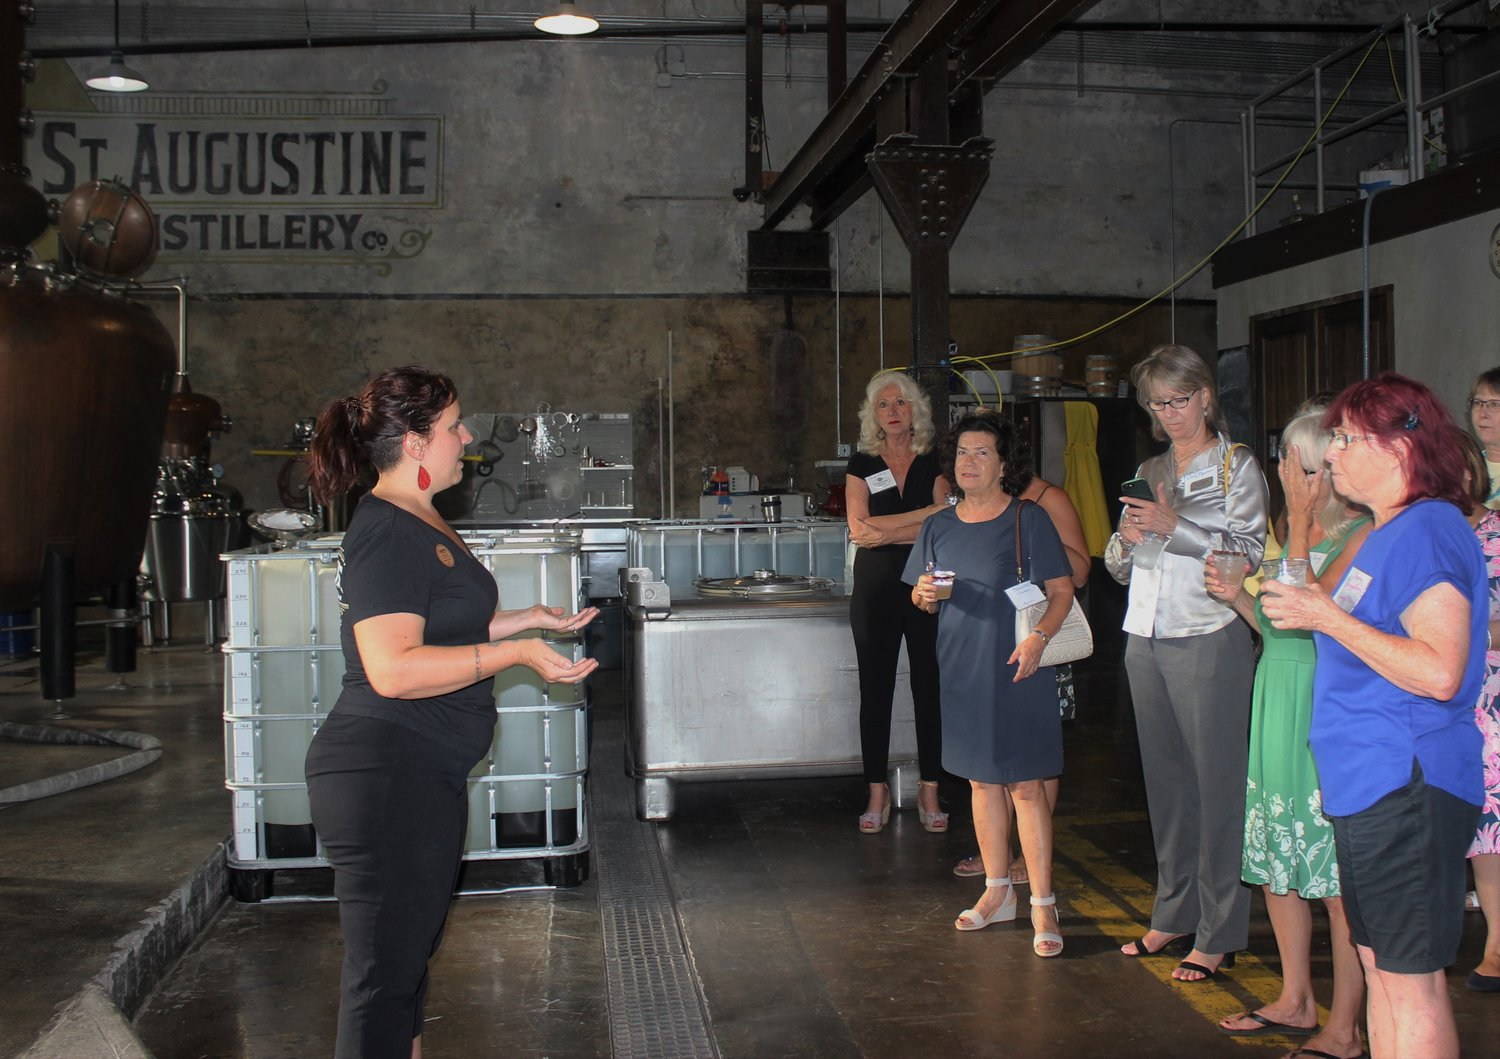 The Women's Food Alliance made a visit to the St. Augustine Distillery on June 24 for a private tour and dinner catered by 4Rivers Smokehouse.